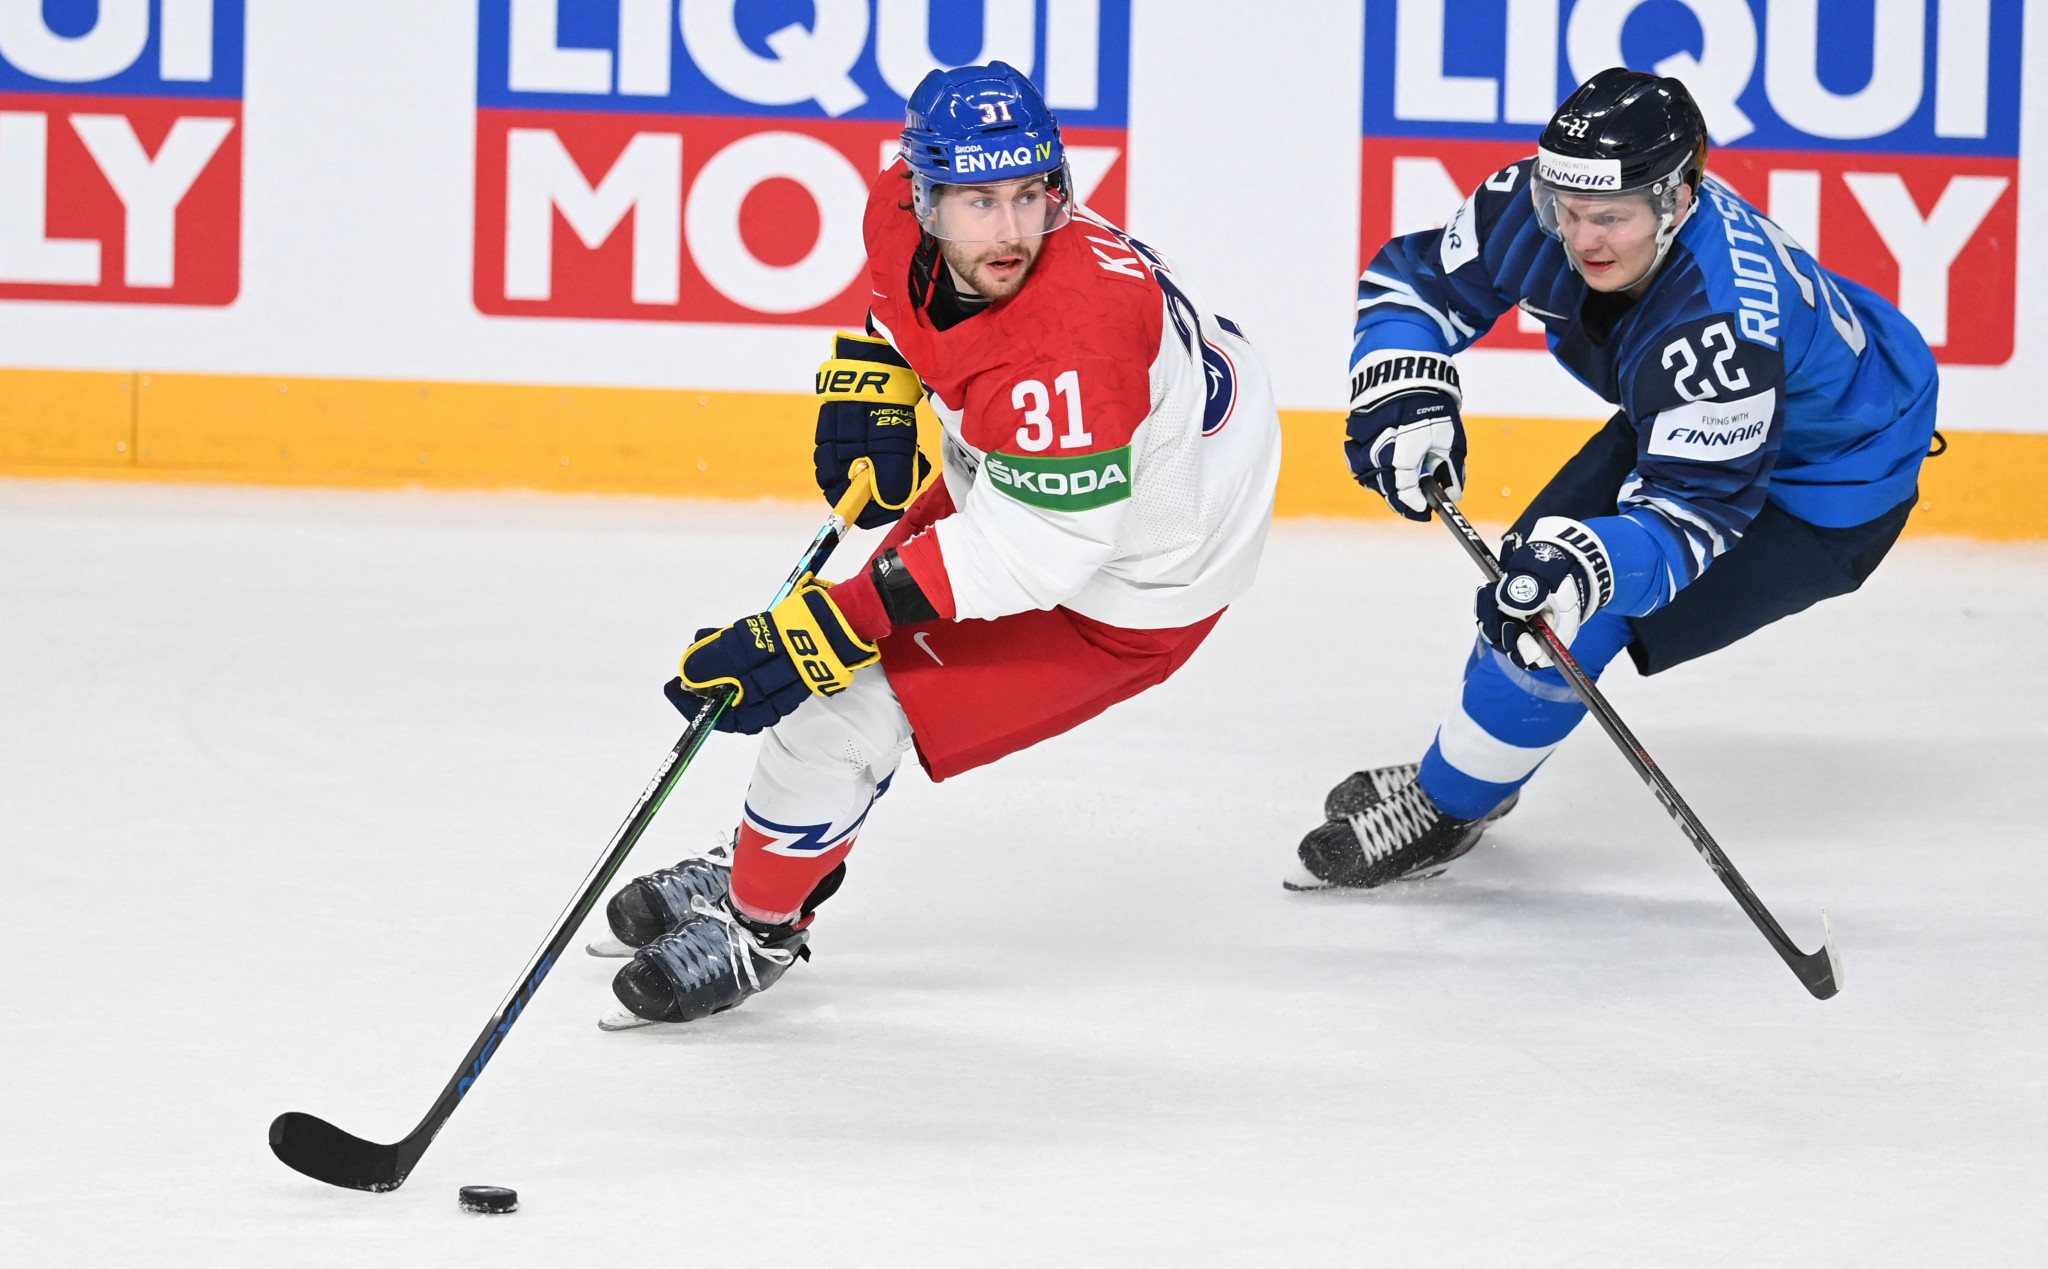 Germany victorious in shoot-out as defending champions Finland edge through in IIHF World Championship semi-finals